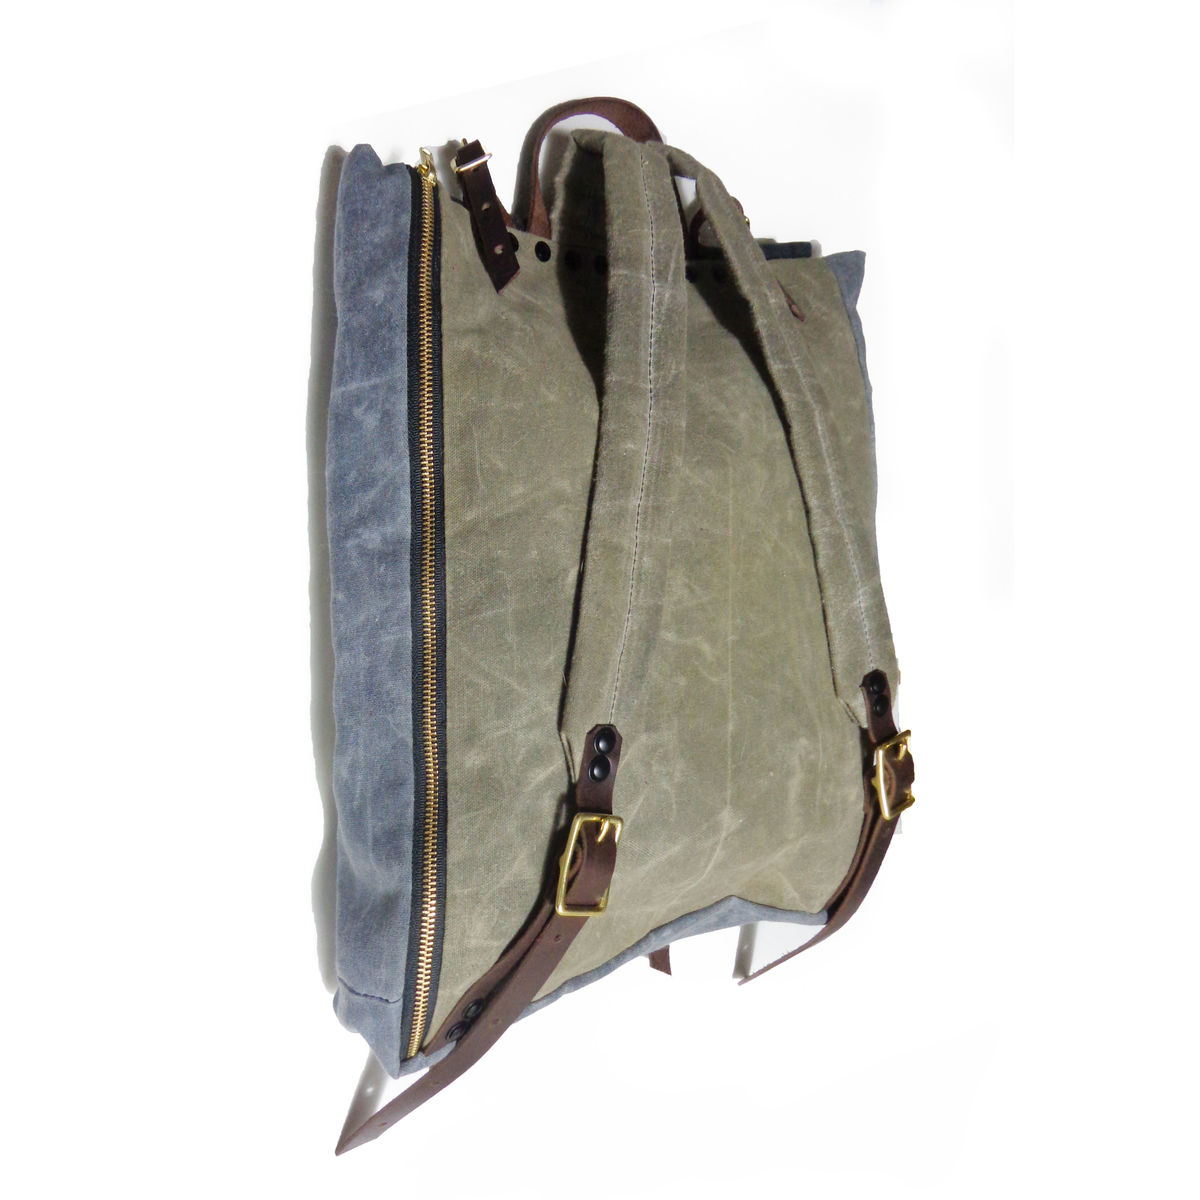 Convertible Laptop Backpack, Tote Strap - Black, Olive - product images  of